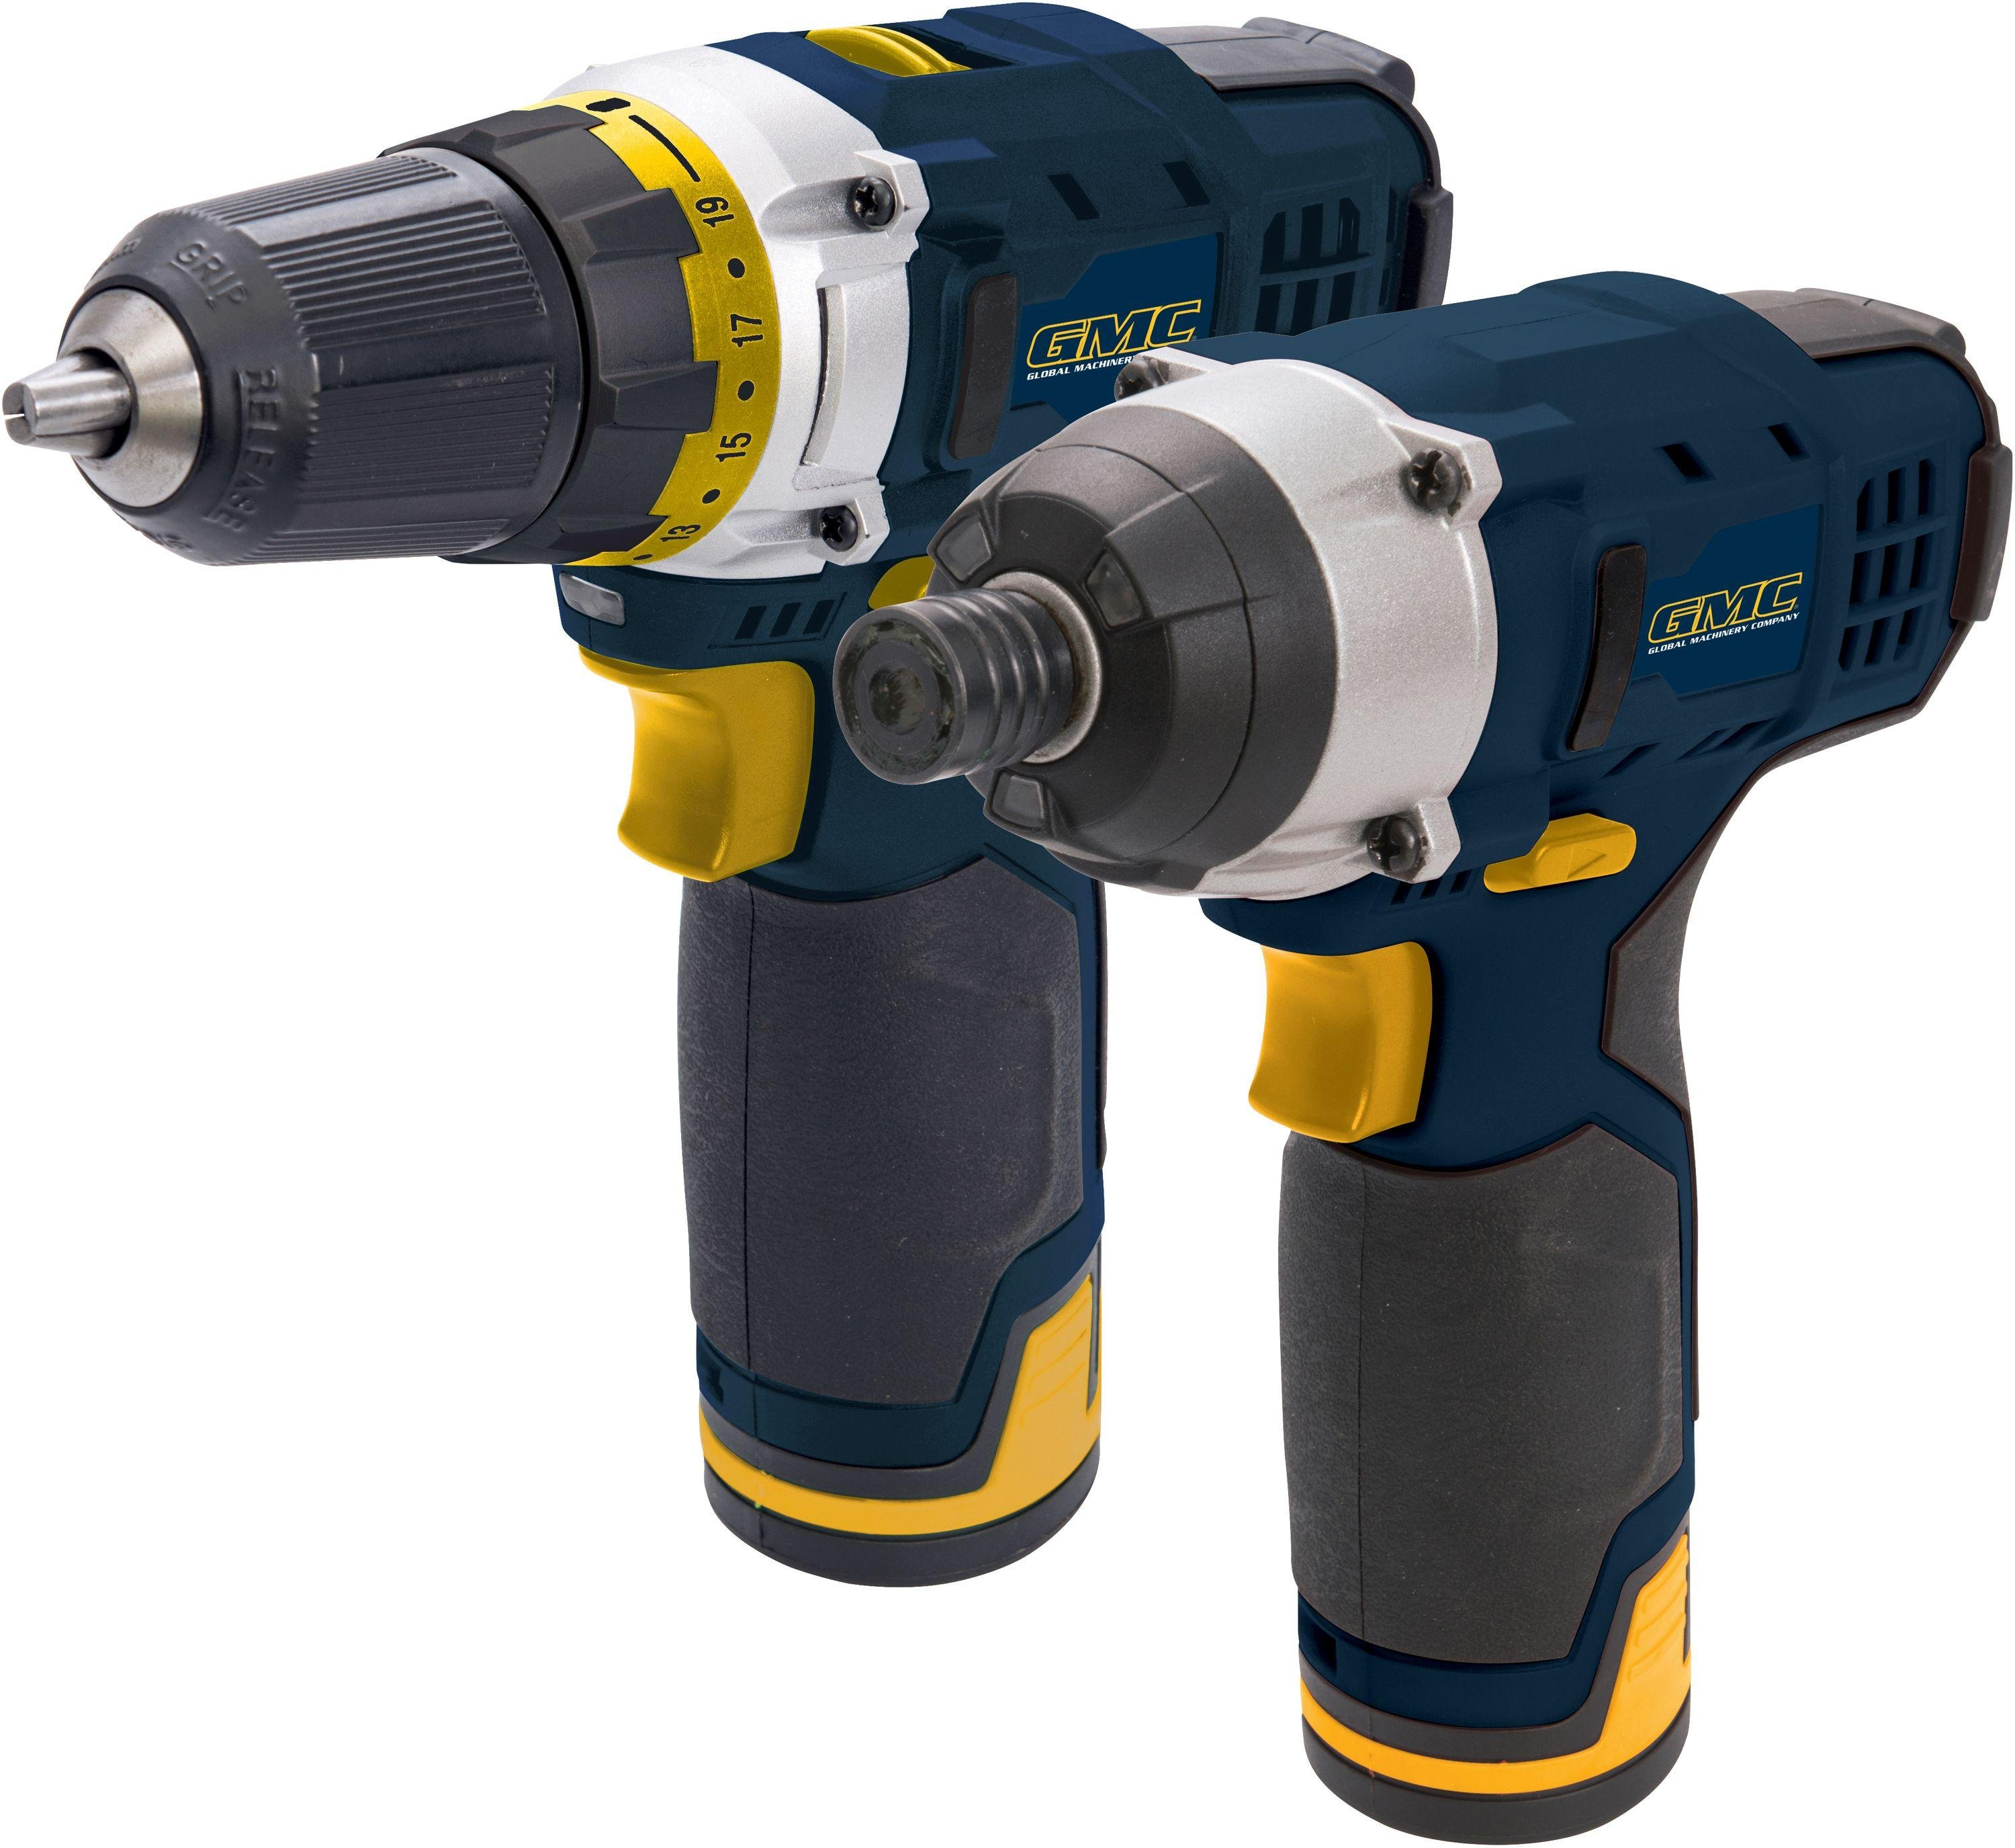 GMC Cordless Drill and Impact Driver Twin Pack - 12V